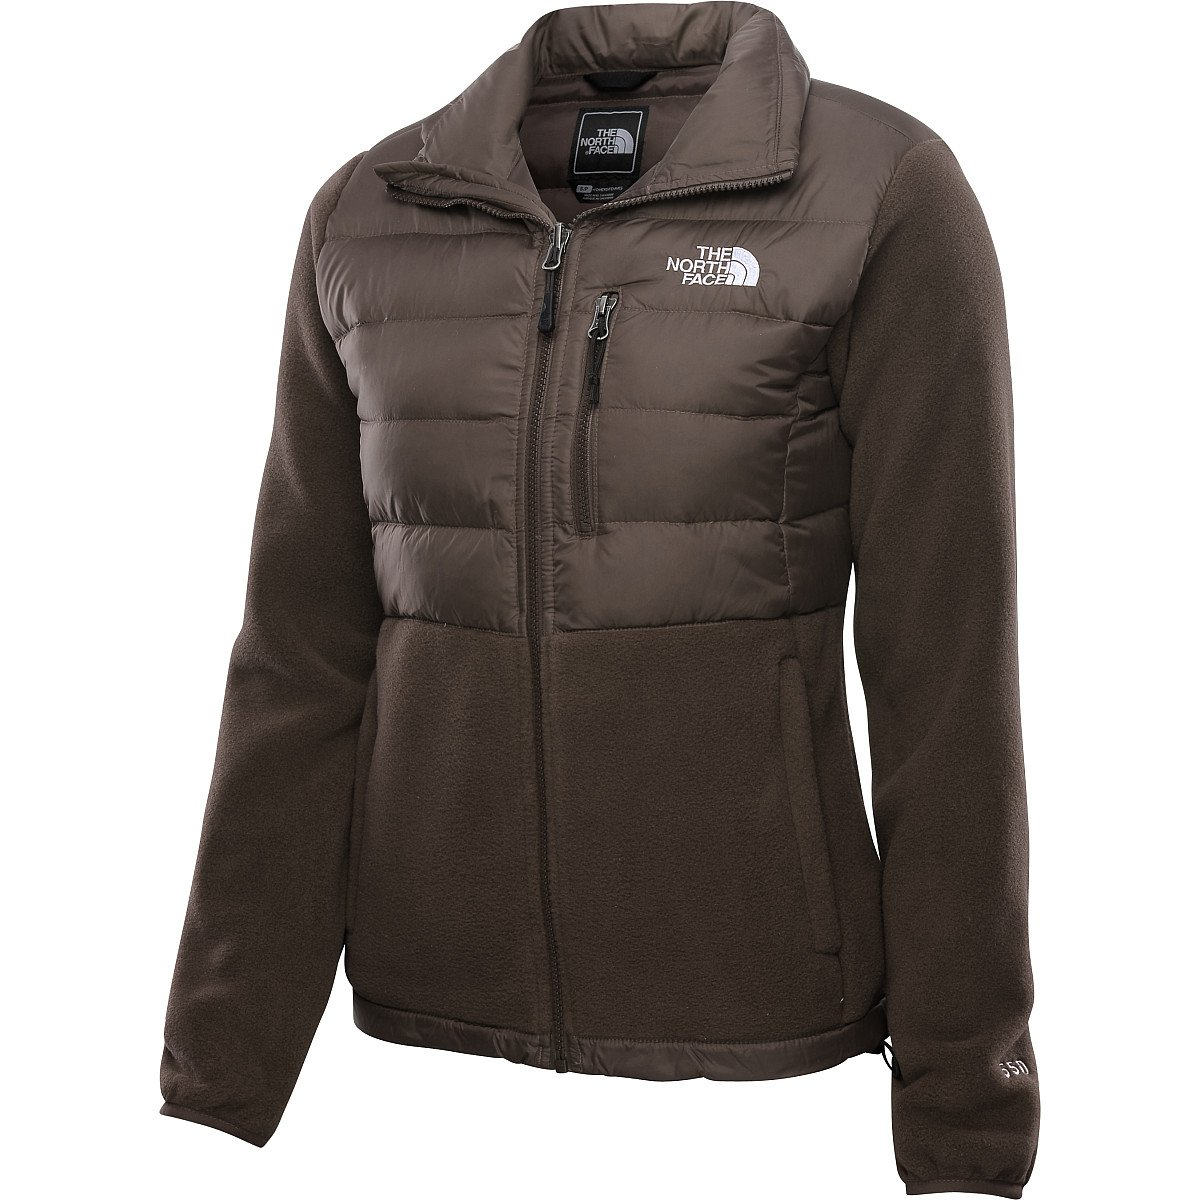 The North Face Denali Down Jacket Womens Style: A54L-A20 Size: XS